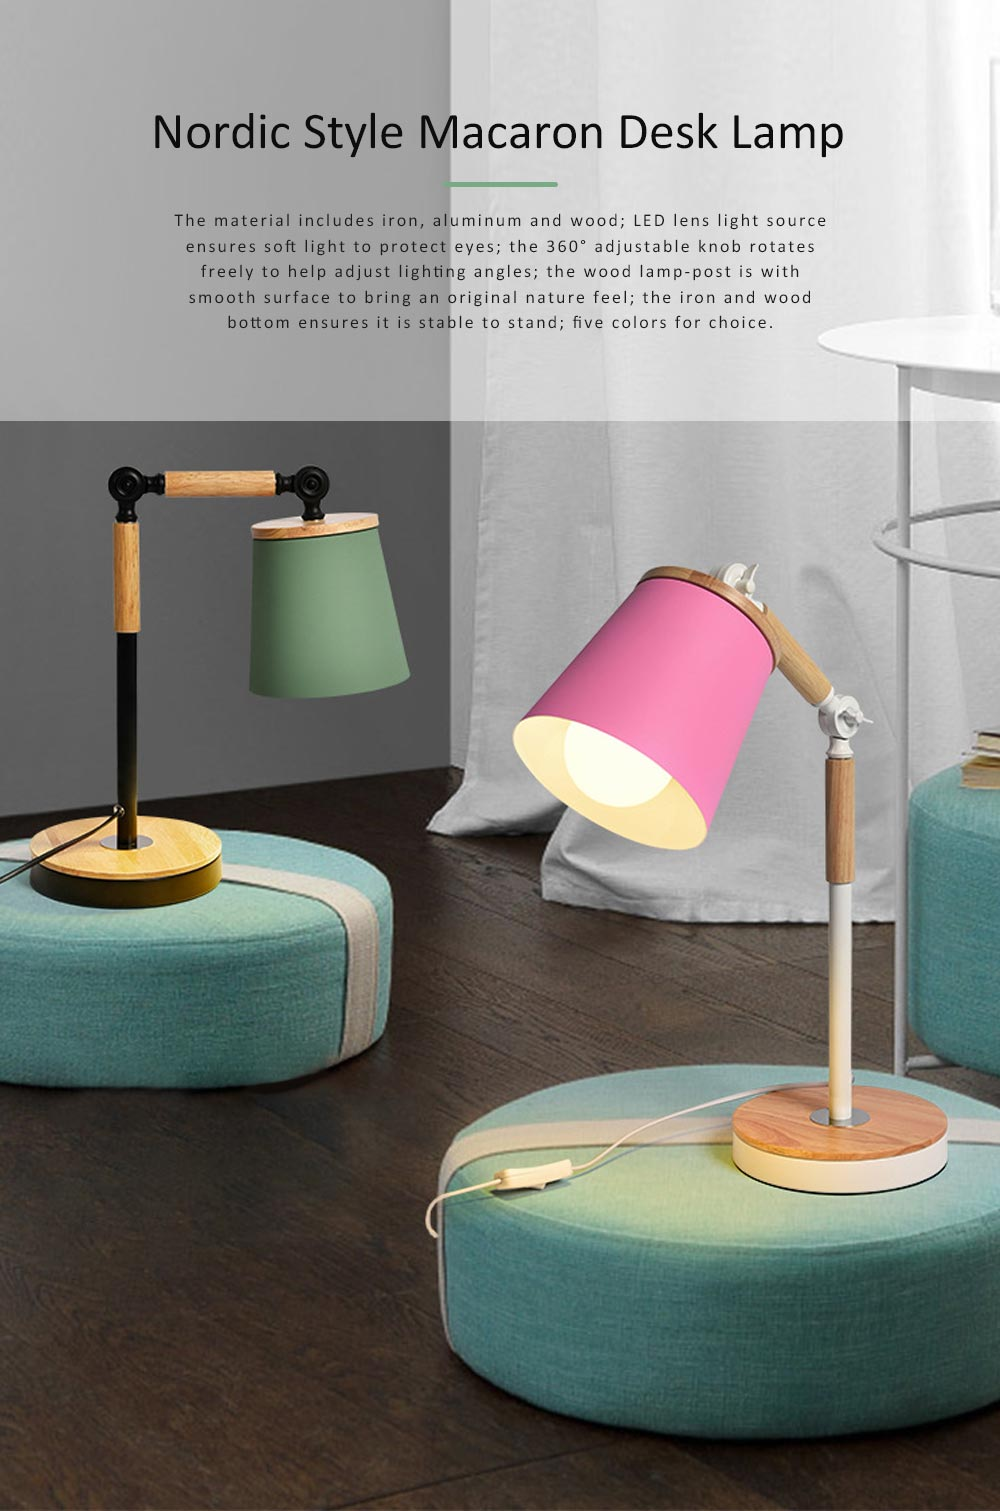 Nordic Style Desk Lamp, Macaron Desk LED Night Light with USB Charging Port, Office Essential Eye Protection LED Light 0